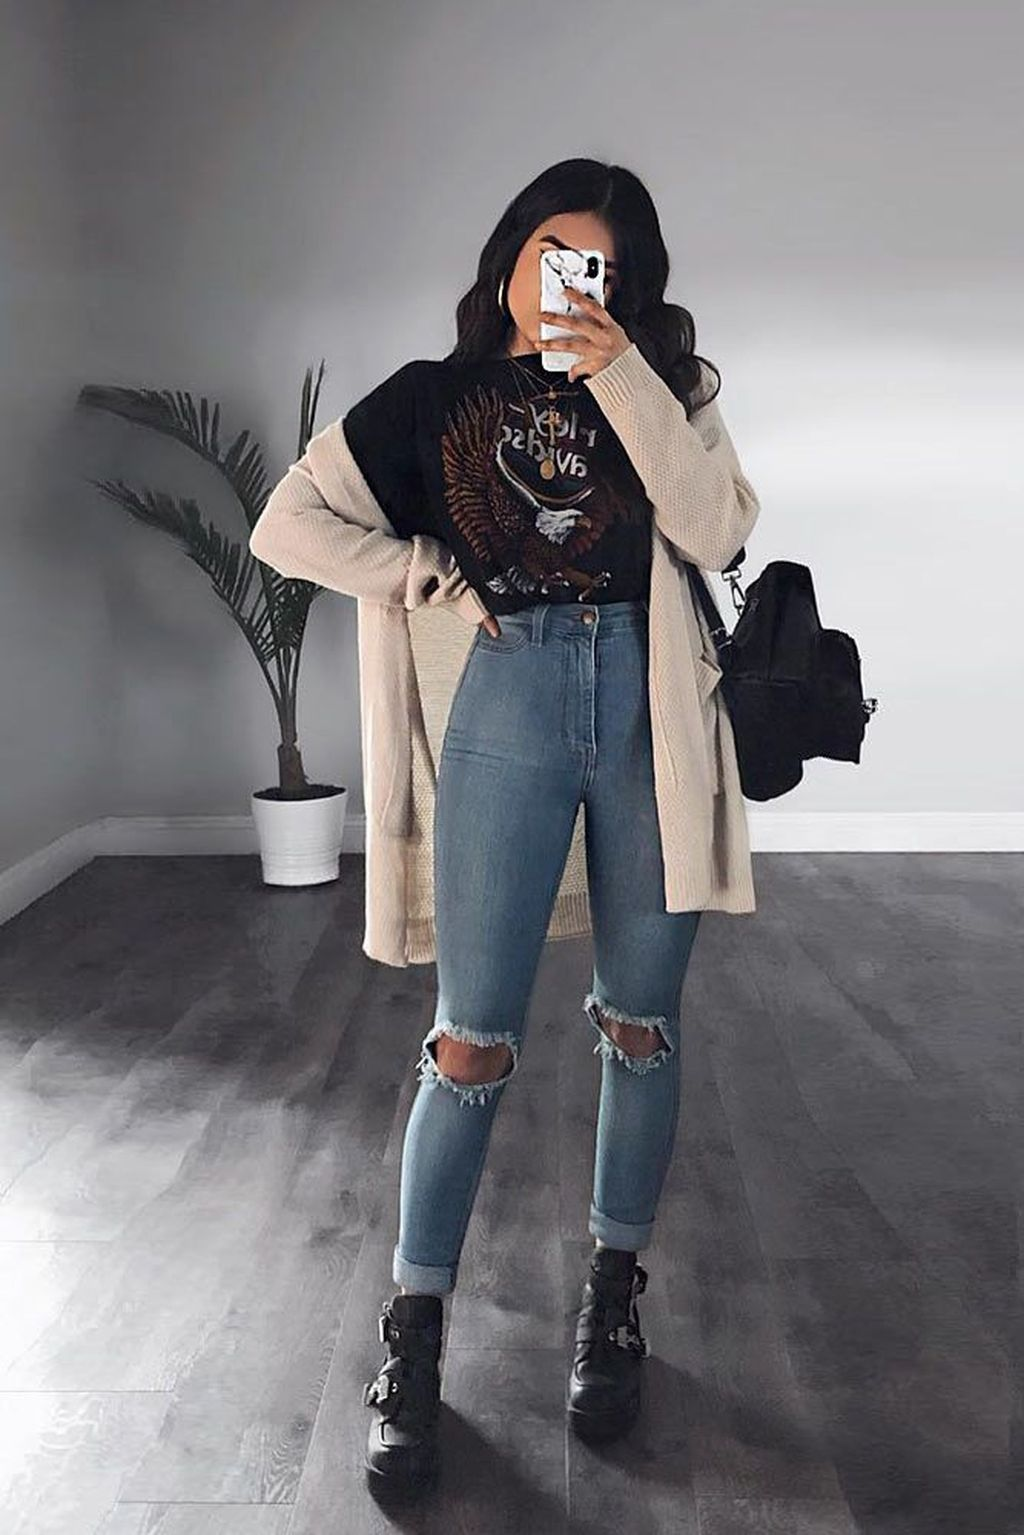 29+ Captivating Winter School Outfits Ideas With Jeans Inspiring